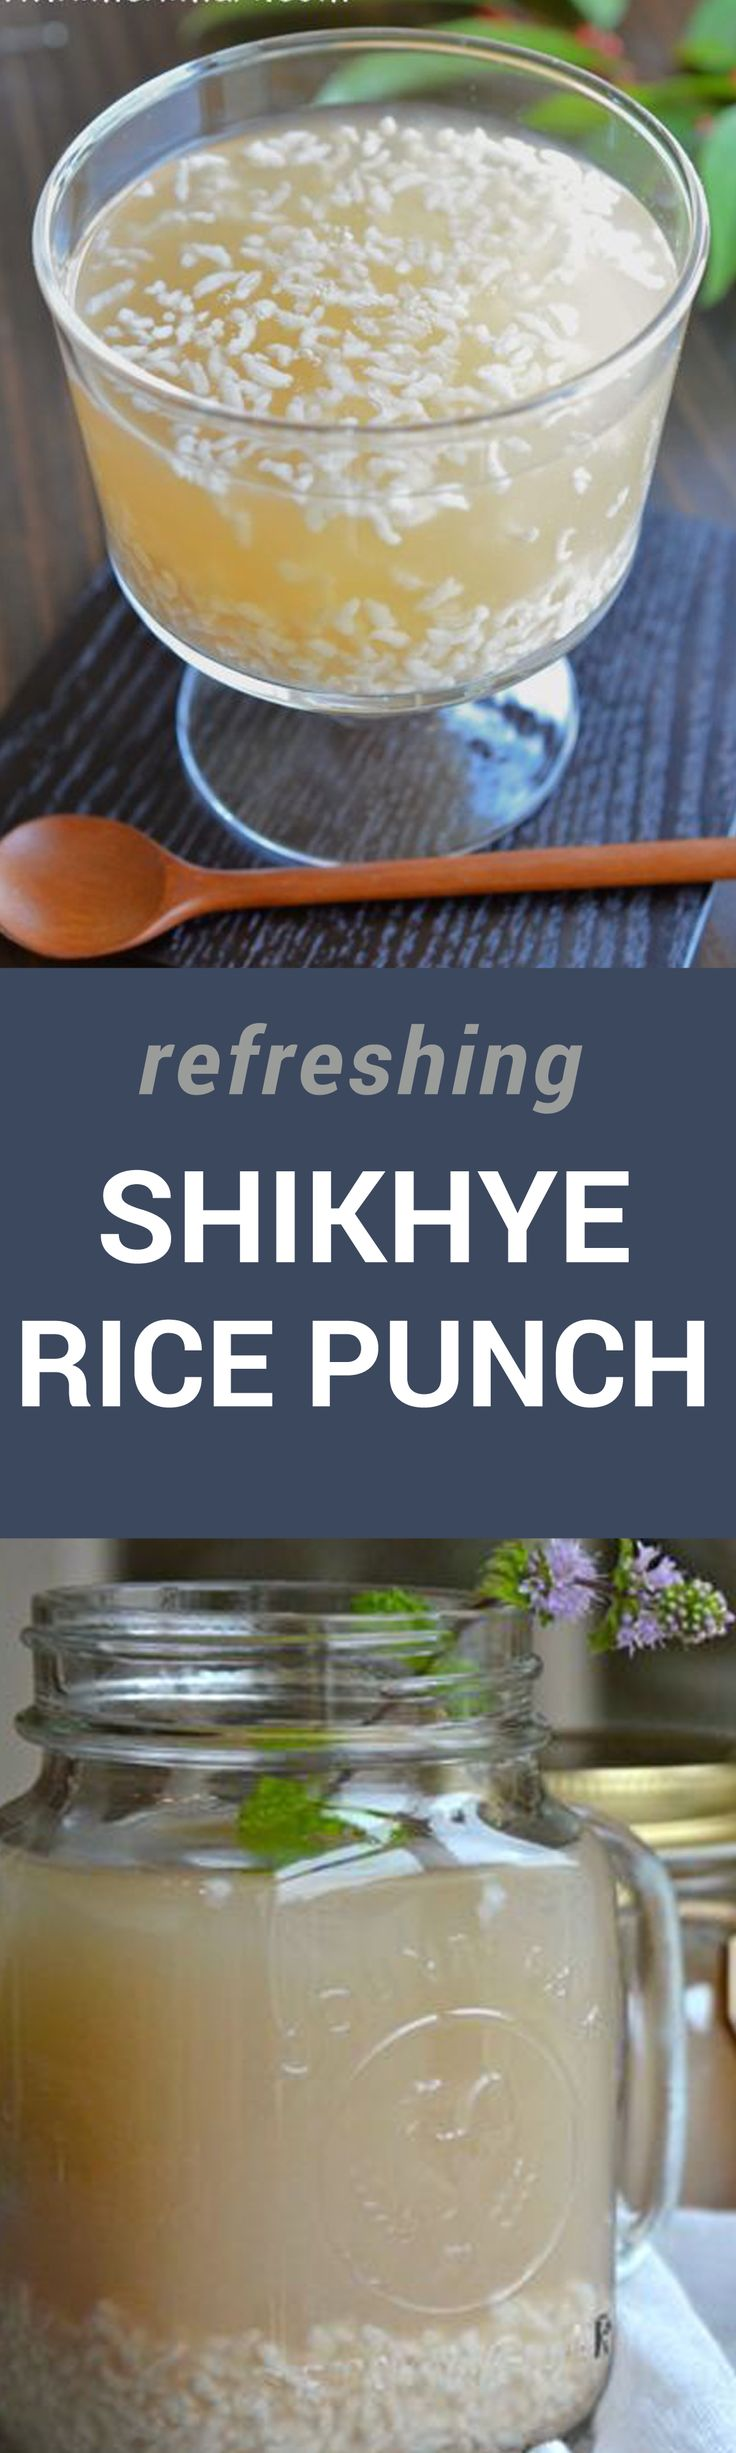 Did you know this rice punch is a digestive helper? Sweet and refreshing, maybe shikhye can help those Christmas bloat to go away :)